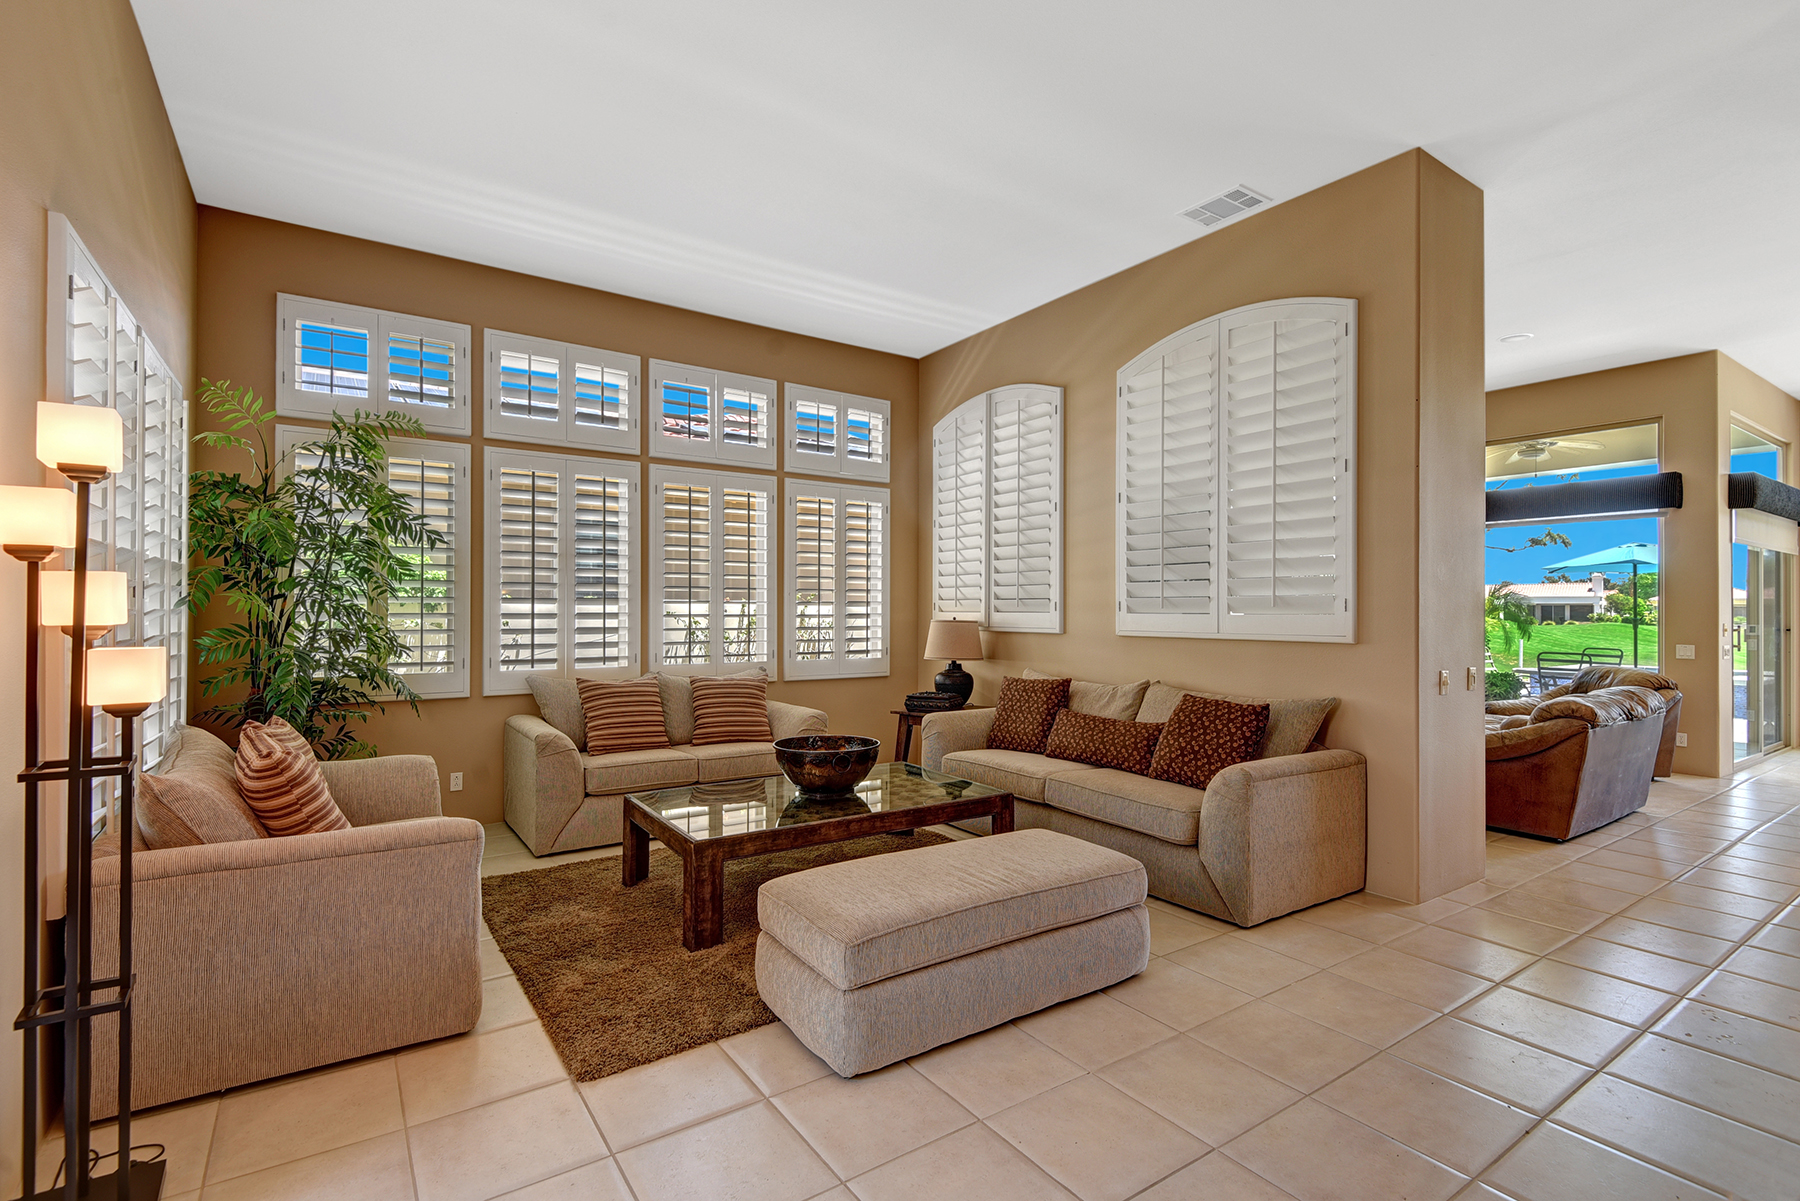 A88855E2-FE9A-2095-E21AEF0DFDCC9832-LIVING ROOM ANGLED TO FAMILY ROOM AND VIEW RS.jpg